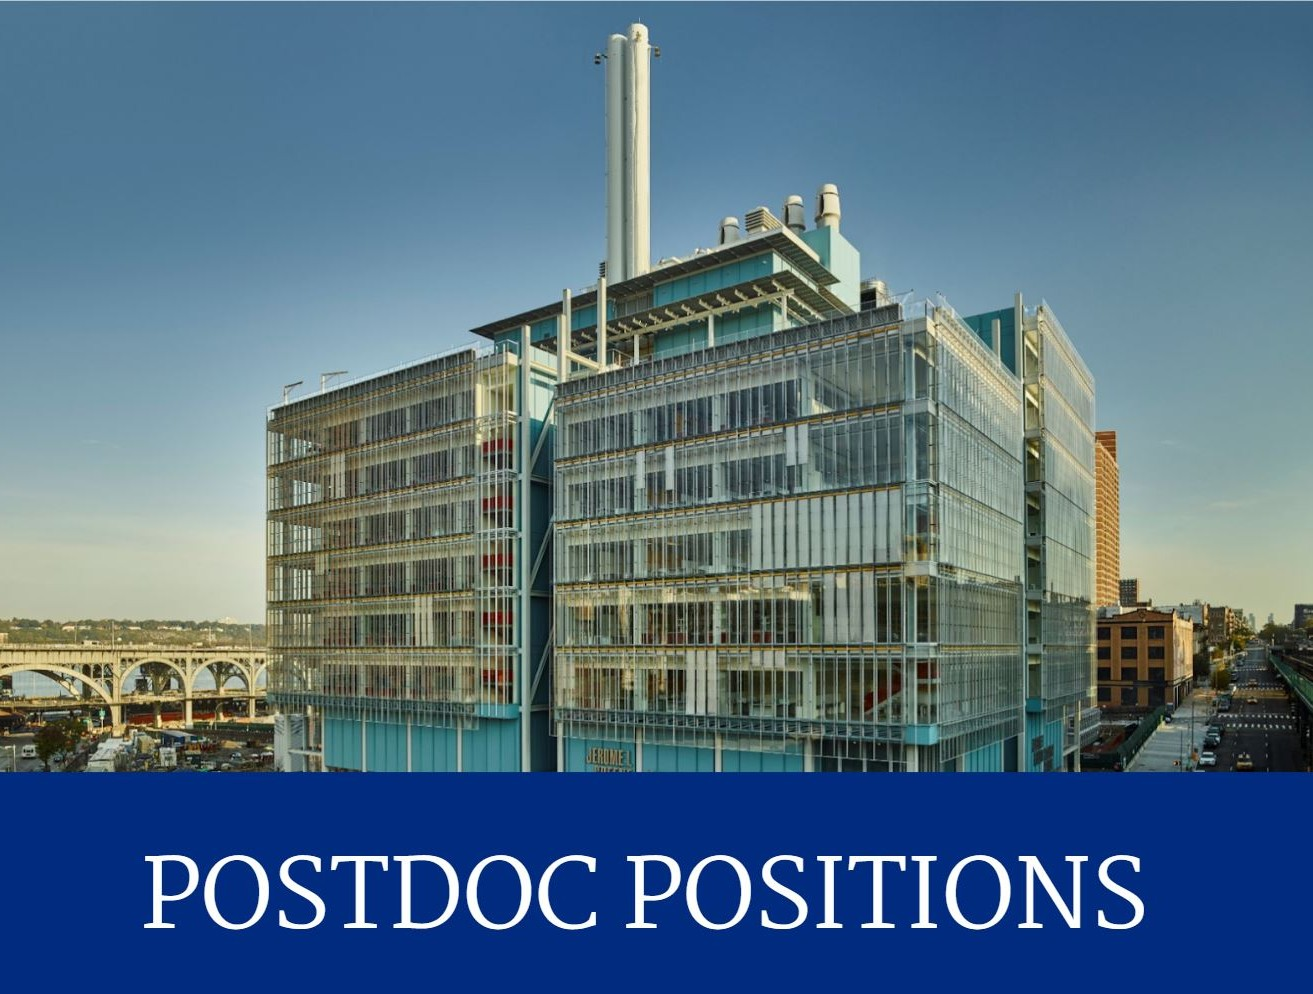 Postdoc Positions